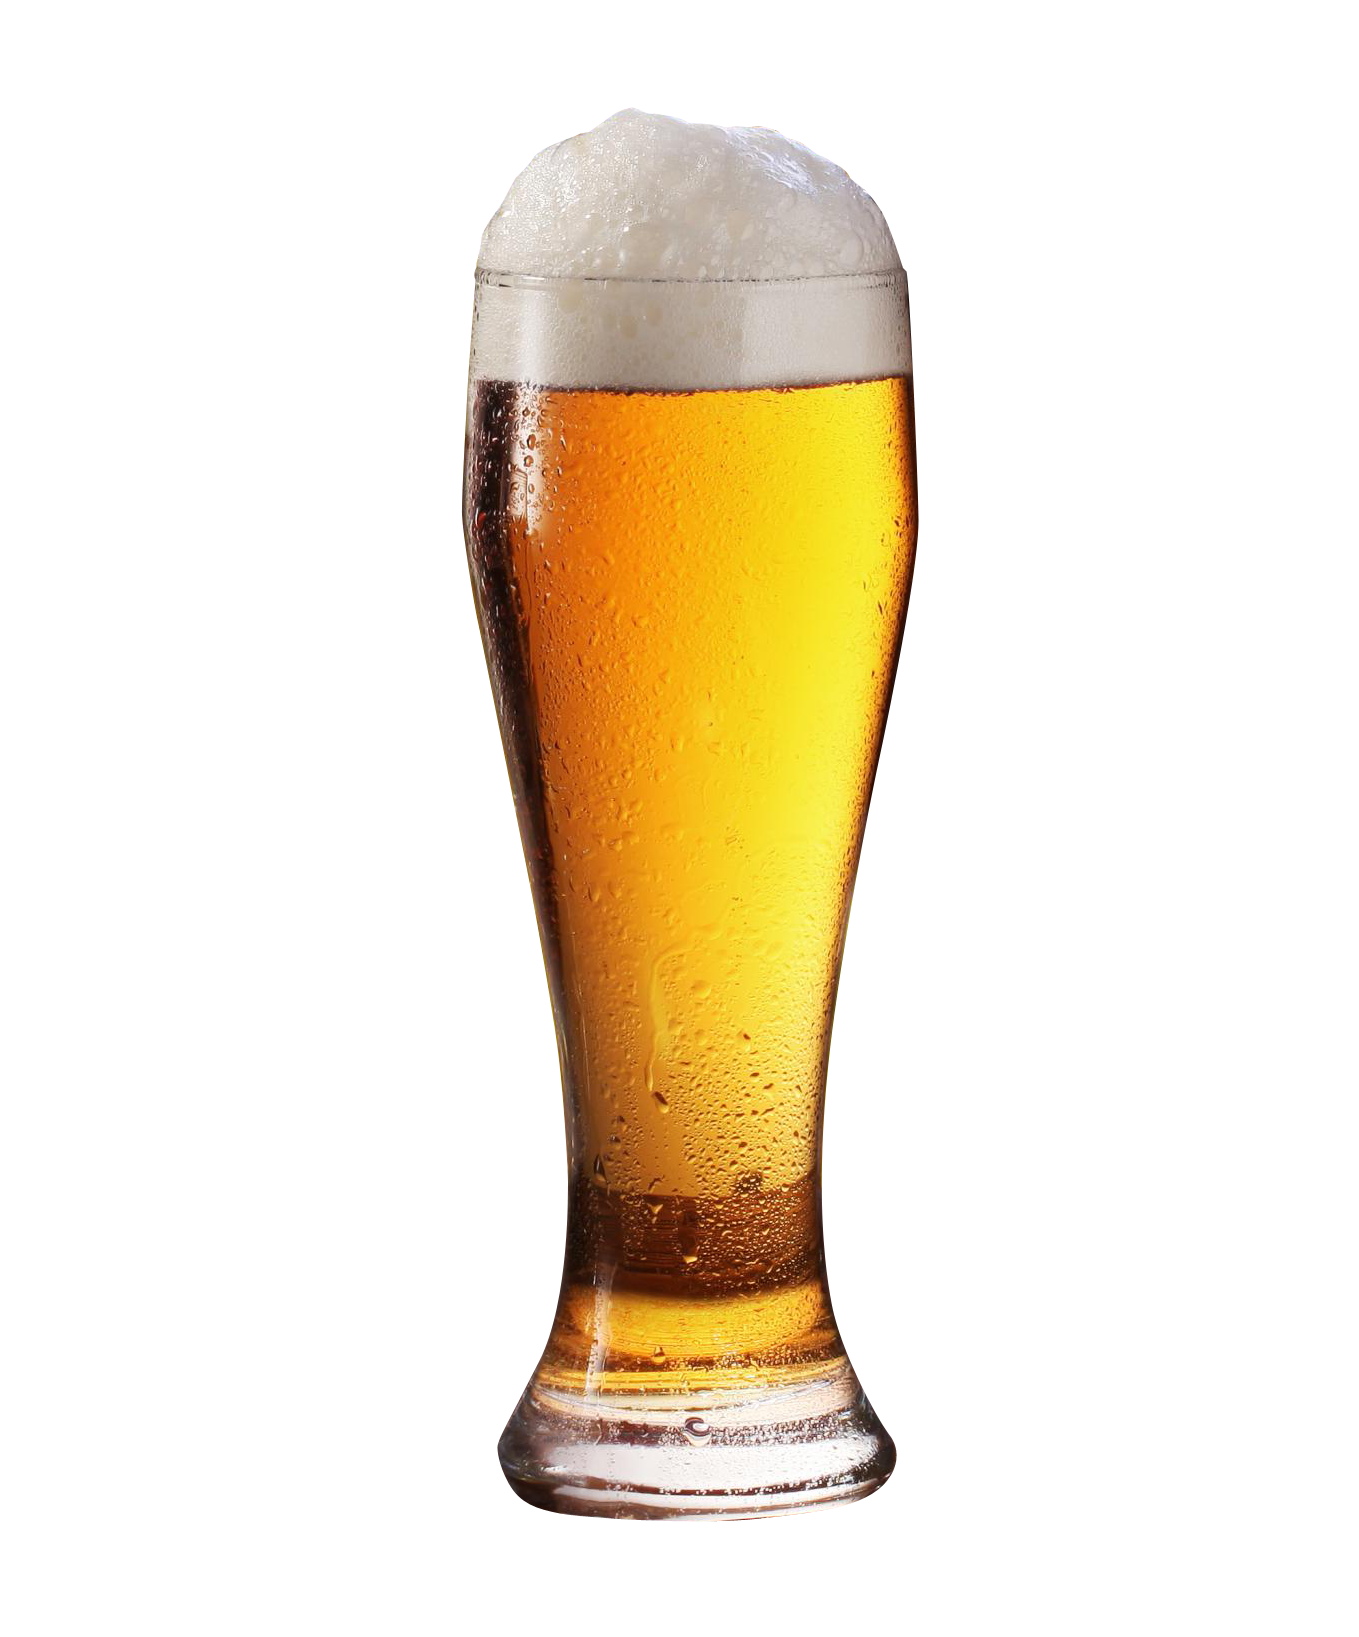 Beer Glass Png - ClipArt Best - 916.7KB